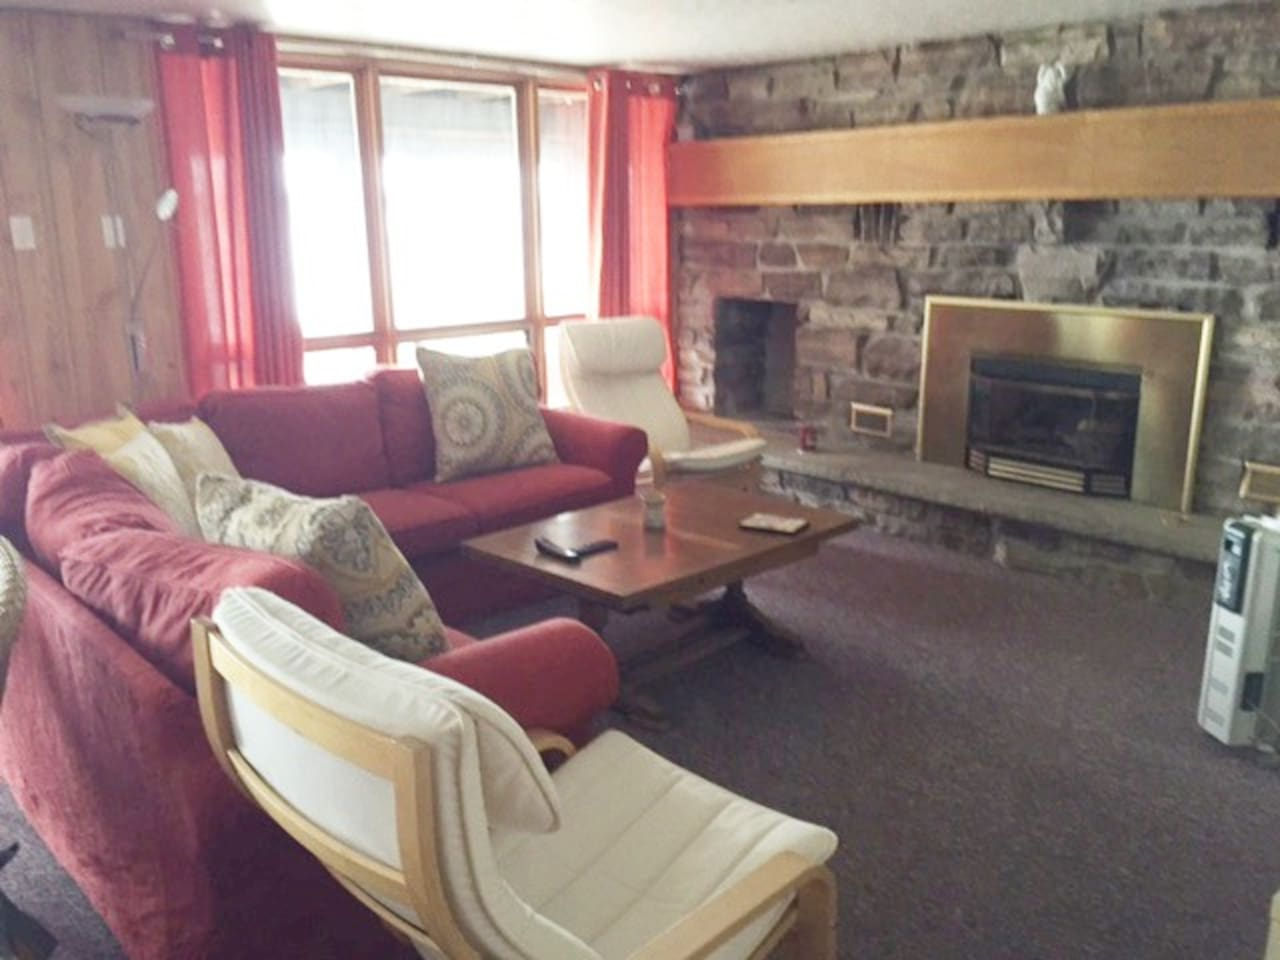 Second Living room with fire place walk out to a screened in porch - great for the evenings to watch the sunsets.